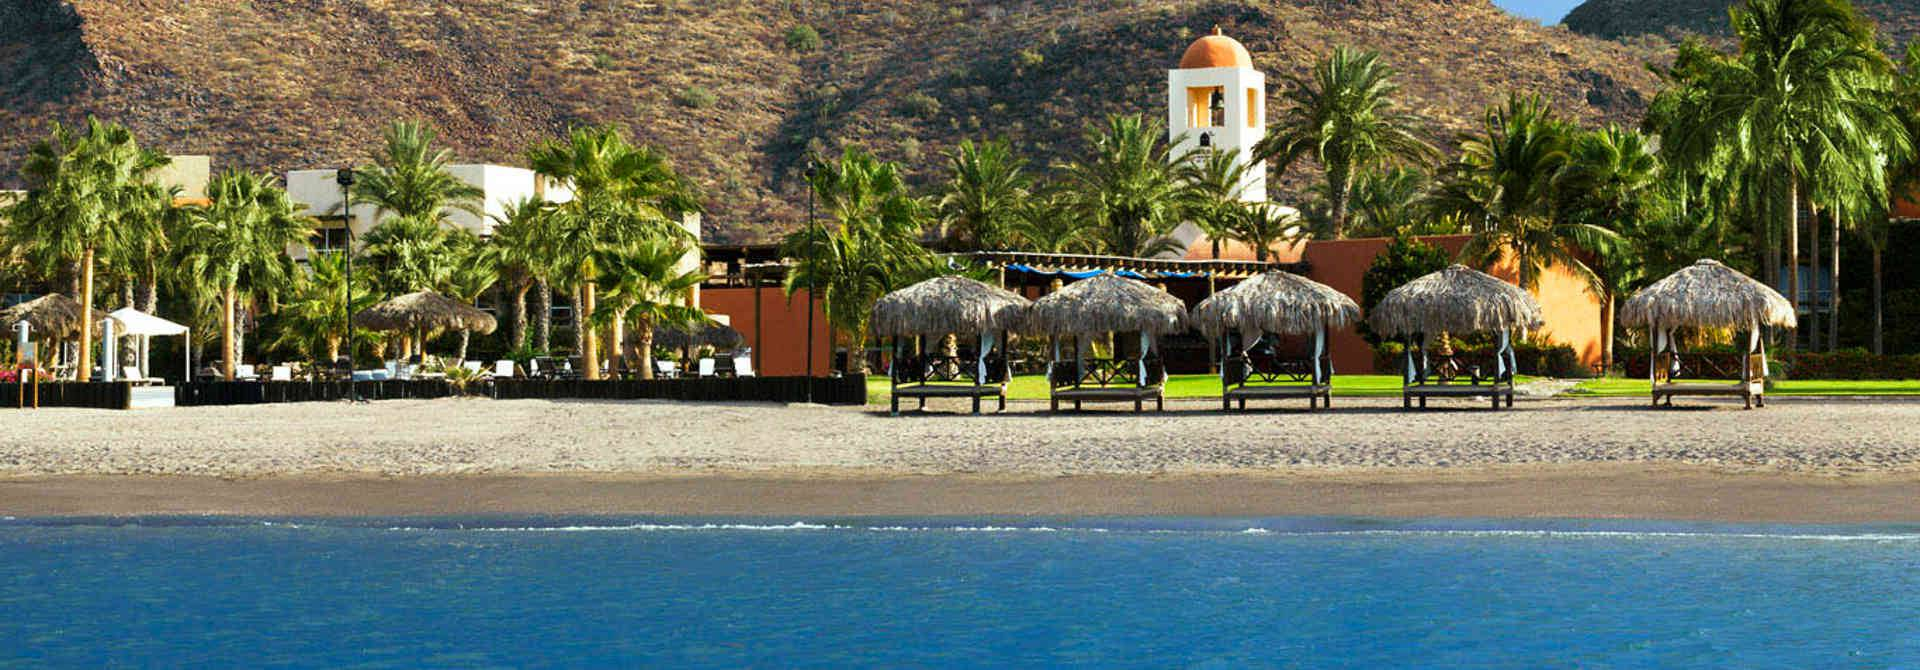 Eventos ideales Hotel Loreto Bay Golf Resort & Spa at Baja Loreto, B.C.S.